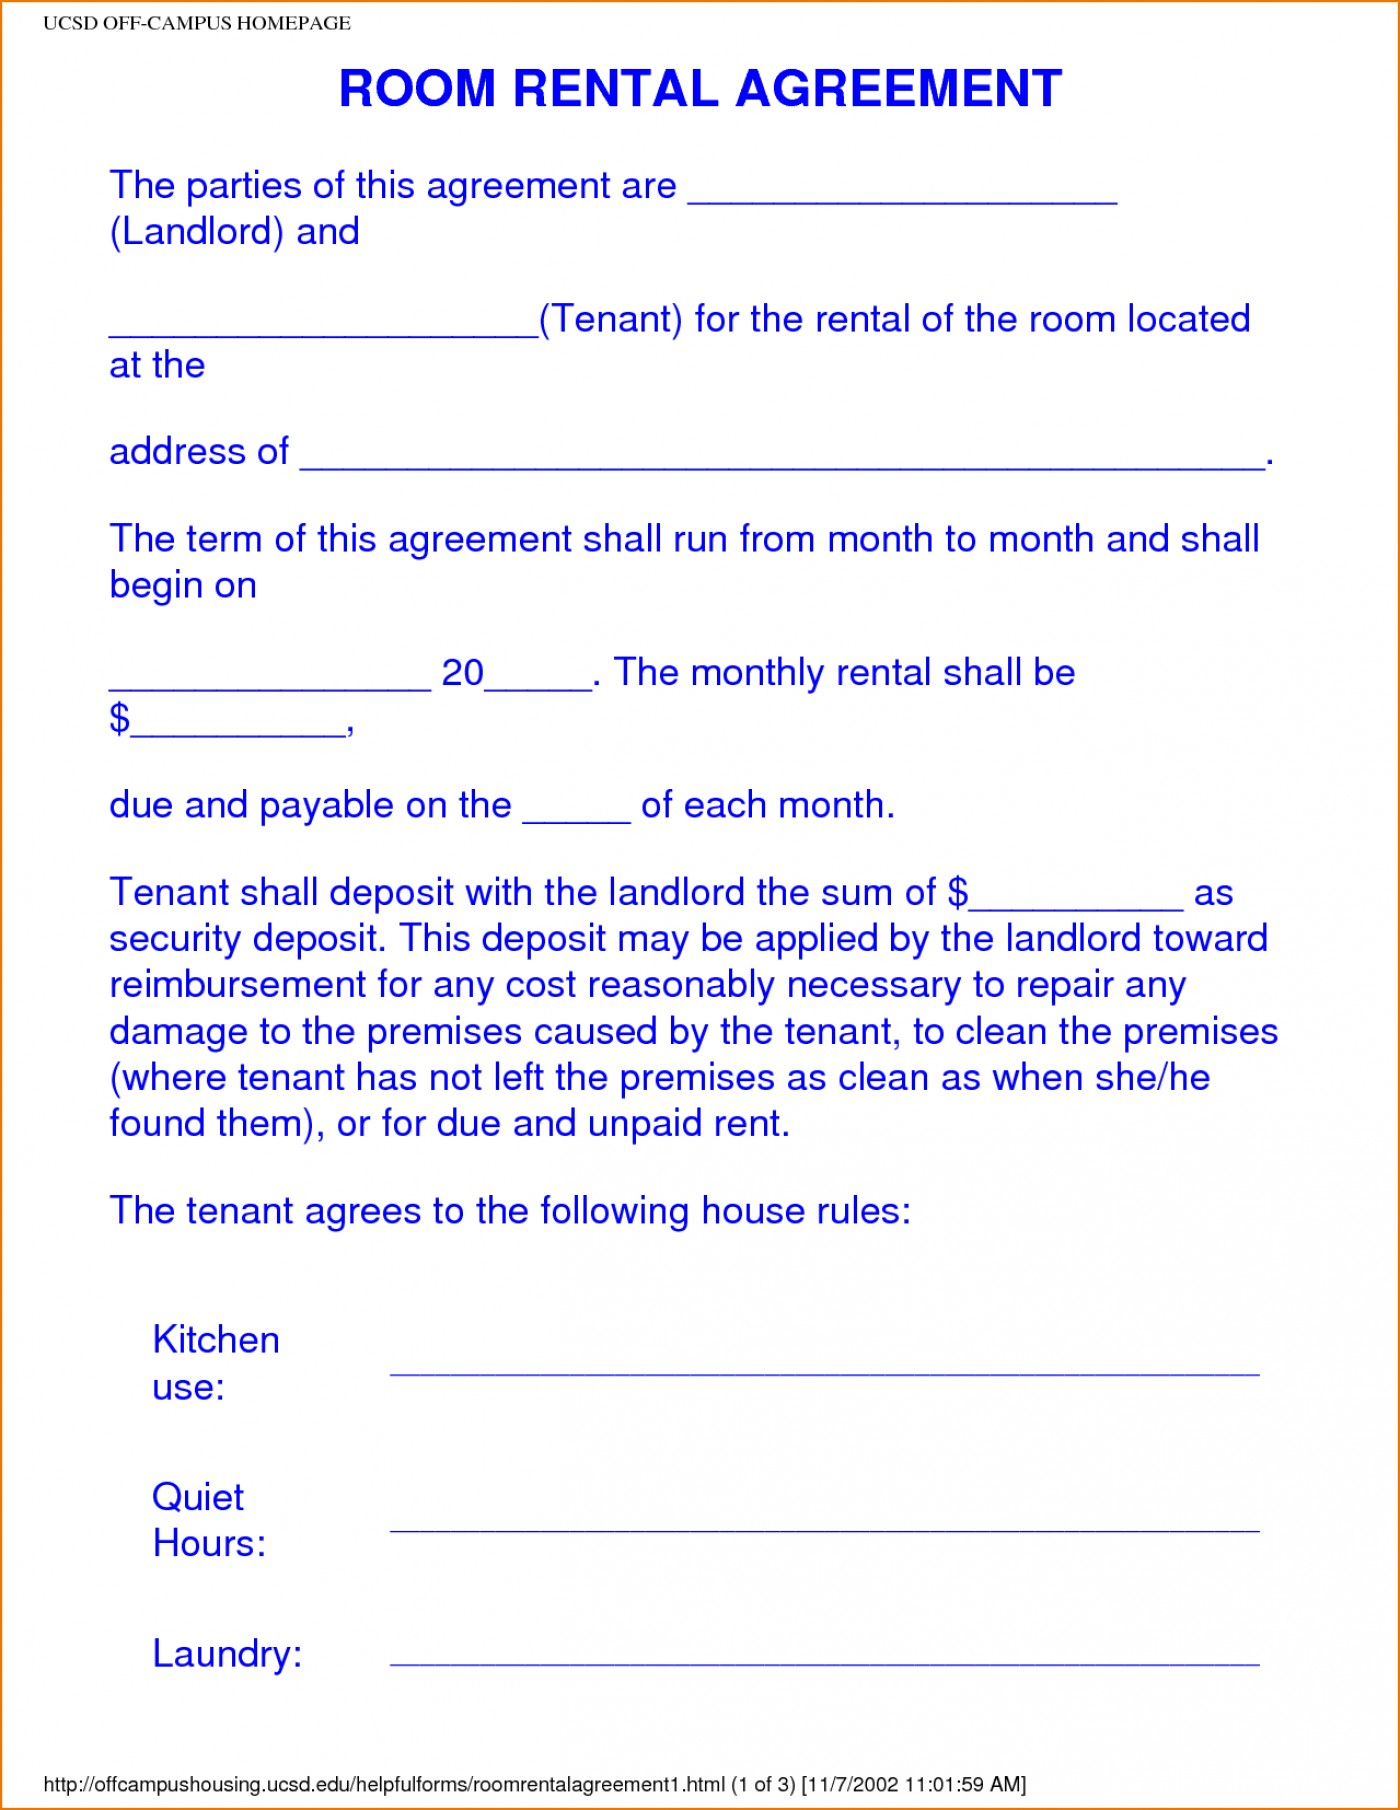 009 Rental Agreement Templates Free Apartment Lease Printable Unique - Free Printable Room Rental Agreement Forms